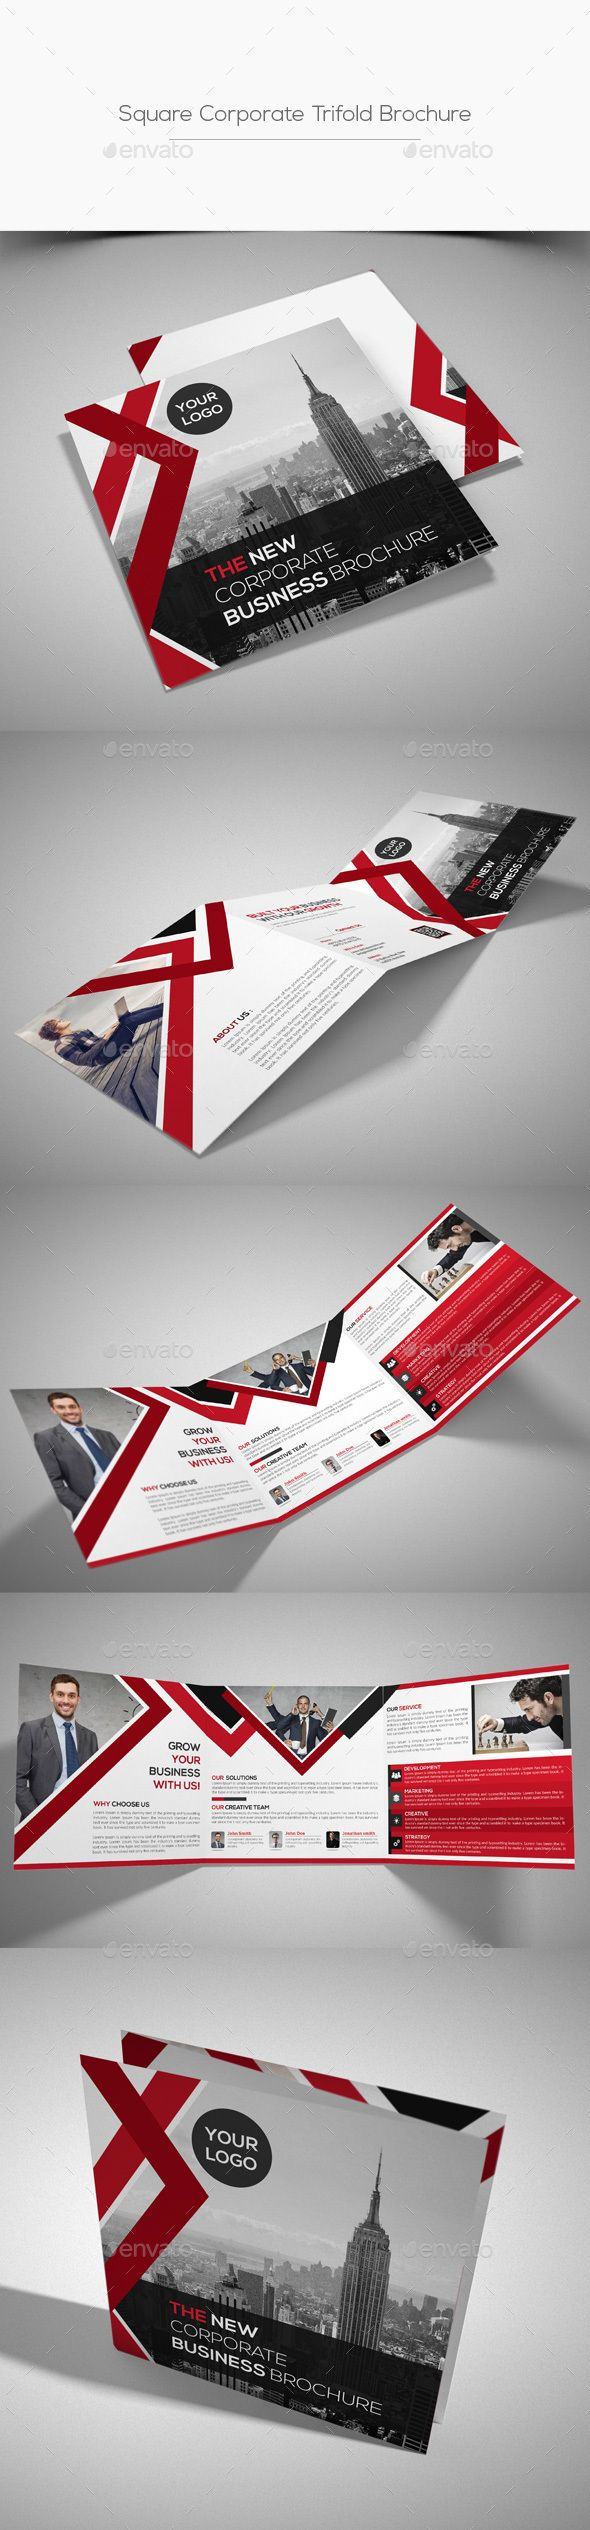 Square Corporate Trifold Brochure Template PSD #design Download: http://graphicriver.net/item/square-corporate-trifold-brochure/13683819?ref=ksioks